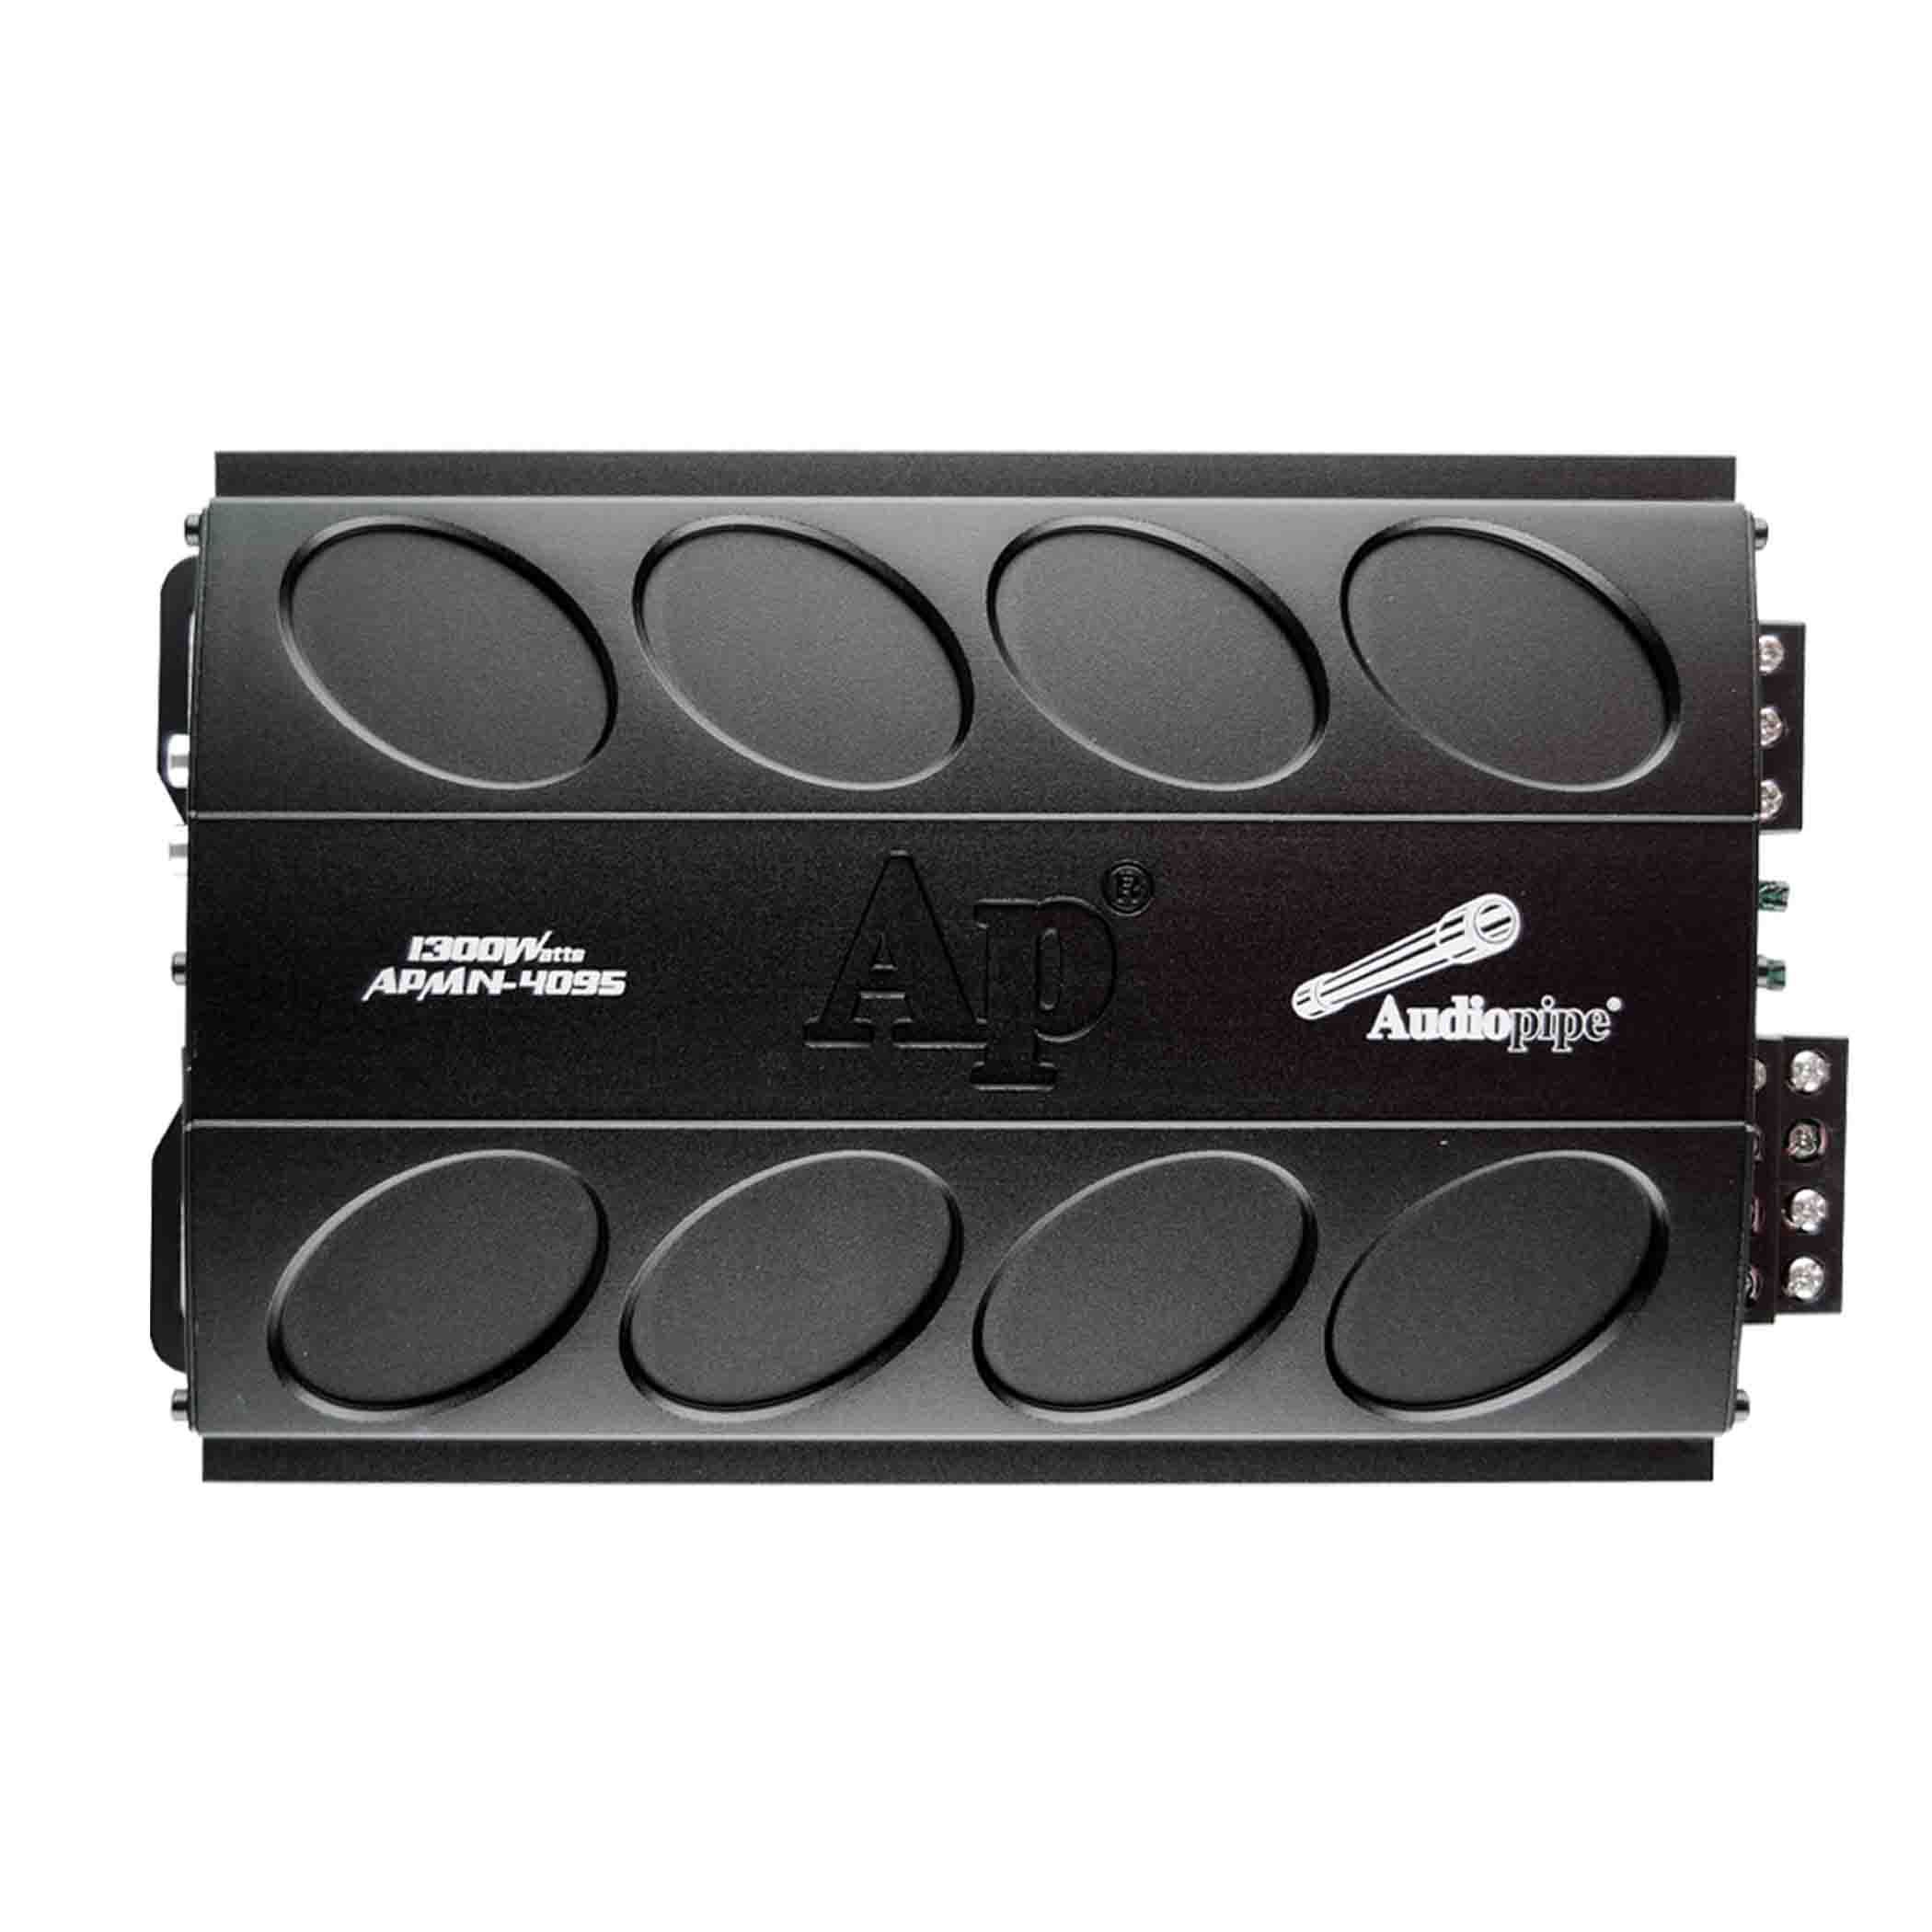 APMN4095 Audiopipe Mini 4 Channel 1300w Amp